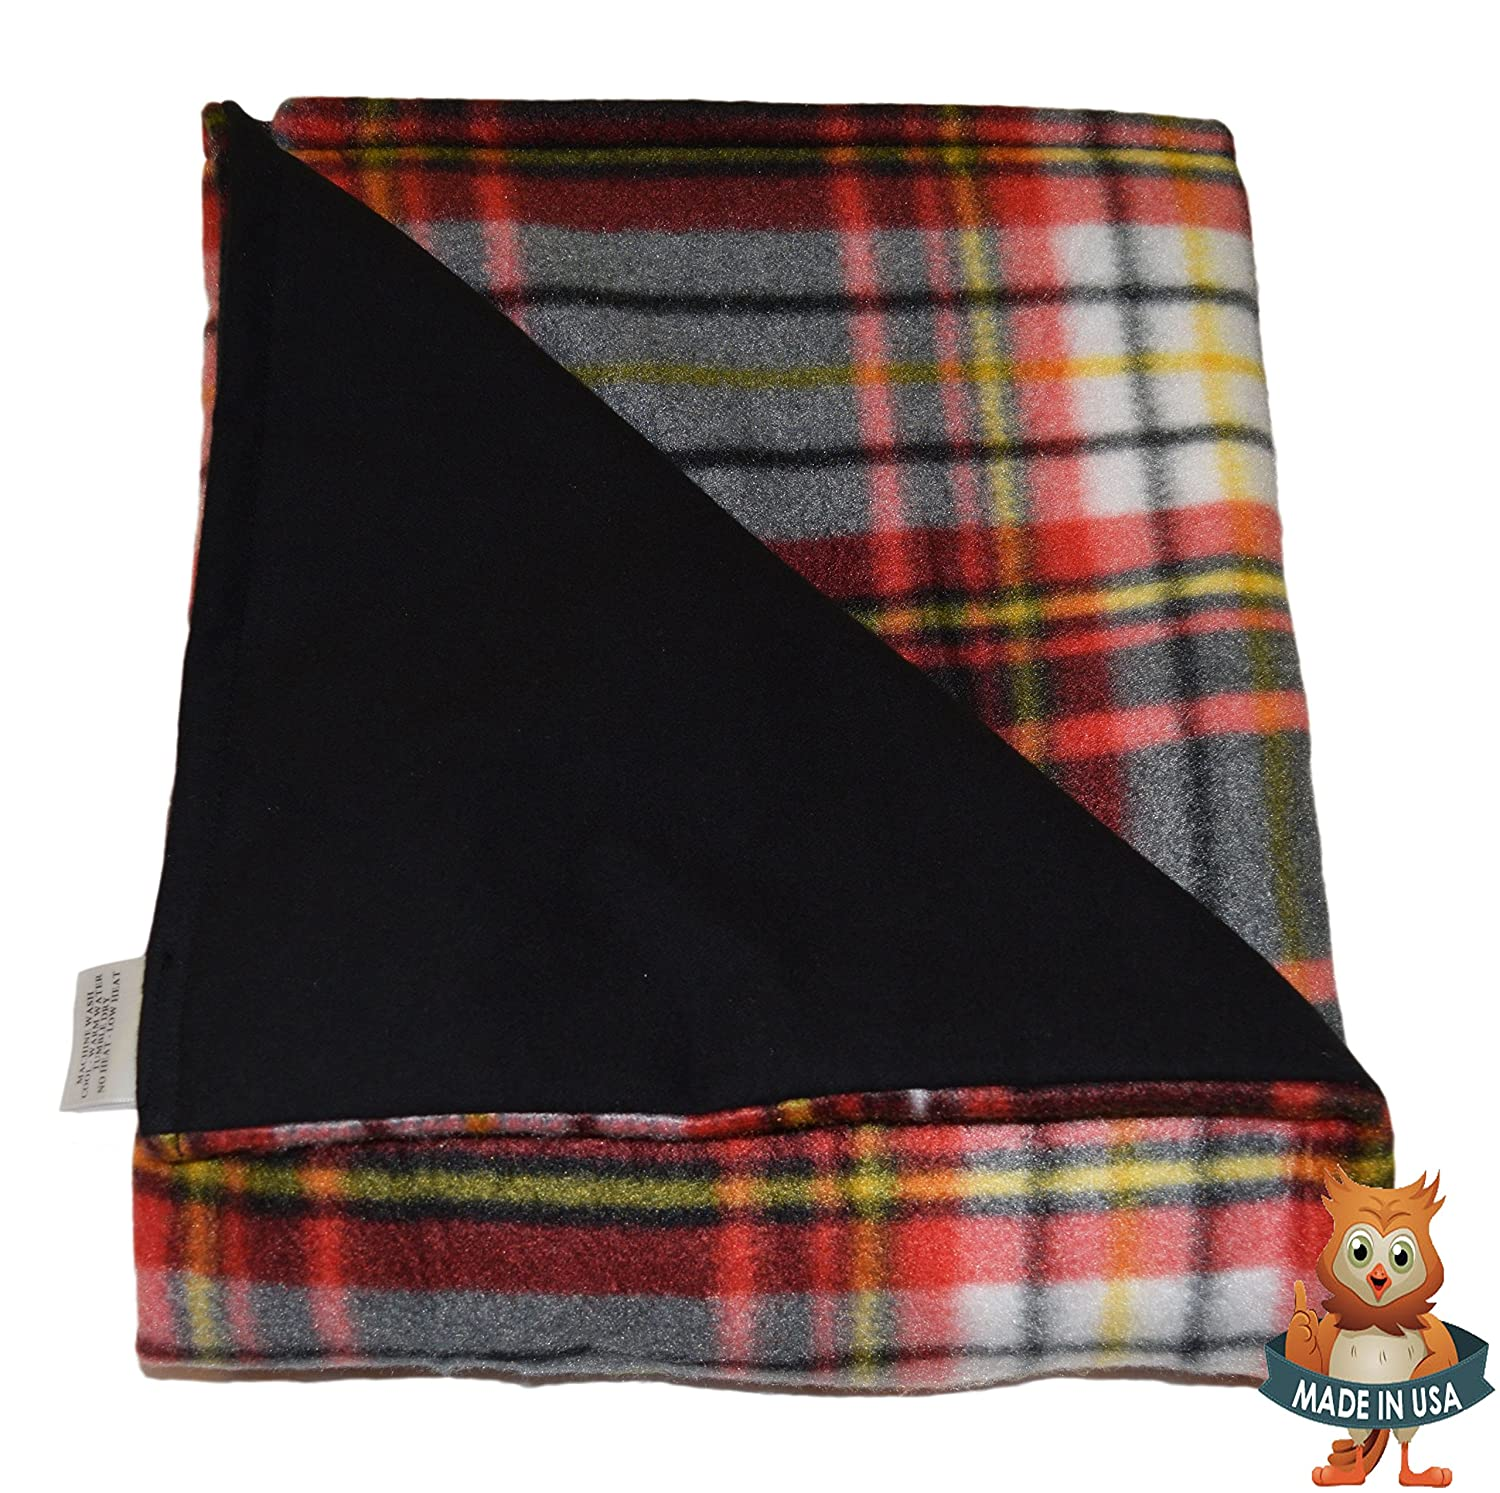 Fleece//Flannel 48 x 30 4lb Low Pressure Domingo-Multi II Pattern//Black SENSORY GOODS Child Small Weighted Blanket Made in America Provides Comfort and Relaxation.